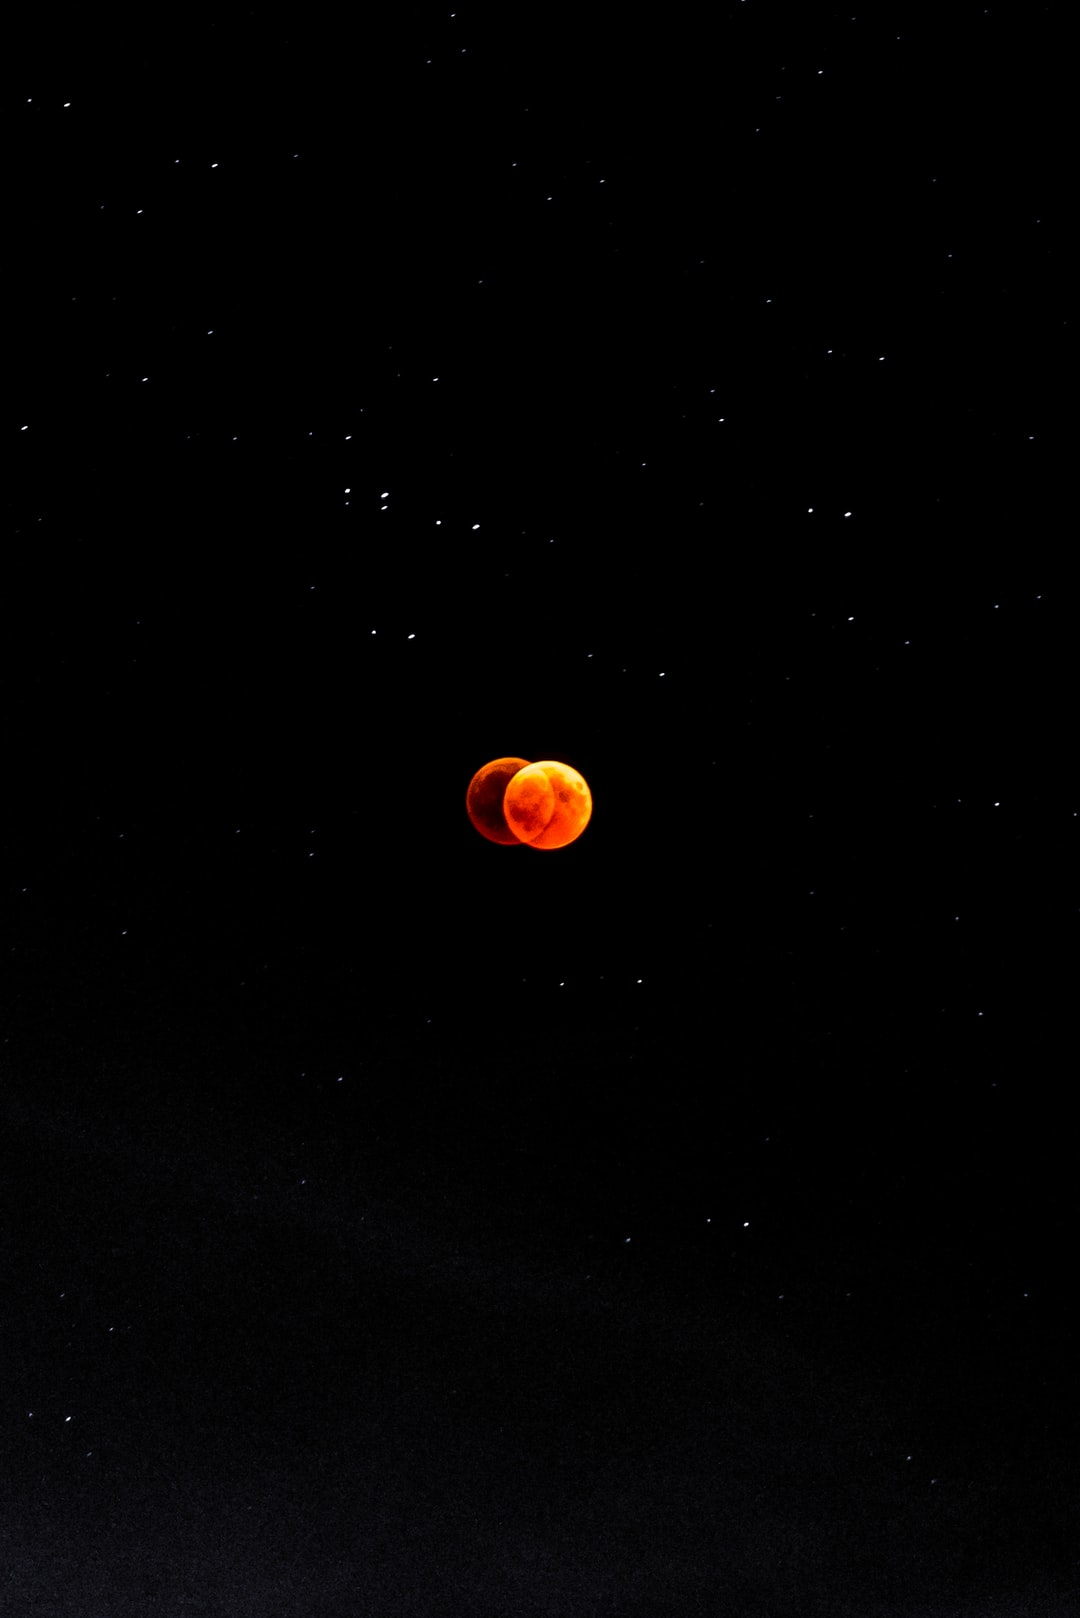 """The Longest 'Blood Moon' Eclipse of the Century.  A lunar eclipse occurs when the Earth passes between the sun and the moon. Unlike with a solar eclipse, when the moon passes between the Earth and sun, blocking the sun's light, the moon is not """"turned dark"""" during an eclipse, but instead appears to turn red.  Because there is light scattered through the atmosphere of the Earth, some of the sun's light gets bounced around the edge of the Earth to hit the moon.  Blue and violet wavelengths are scattered more than red and orange ones, this making the moon appear red."""